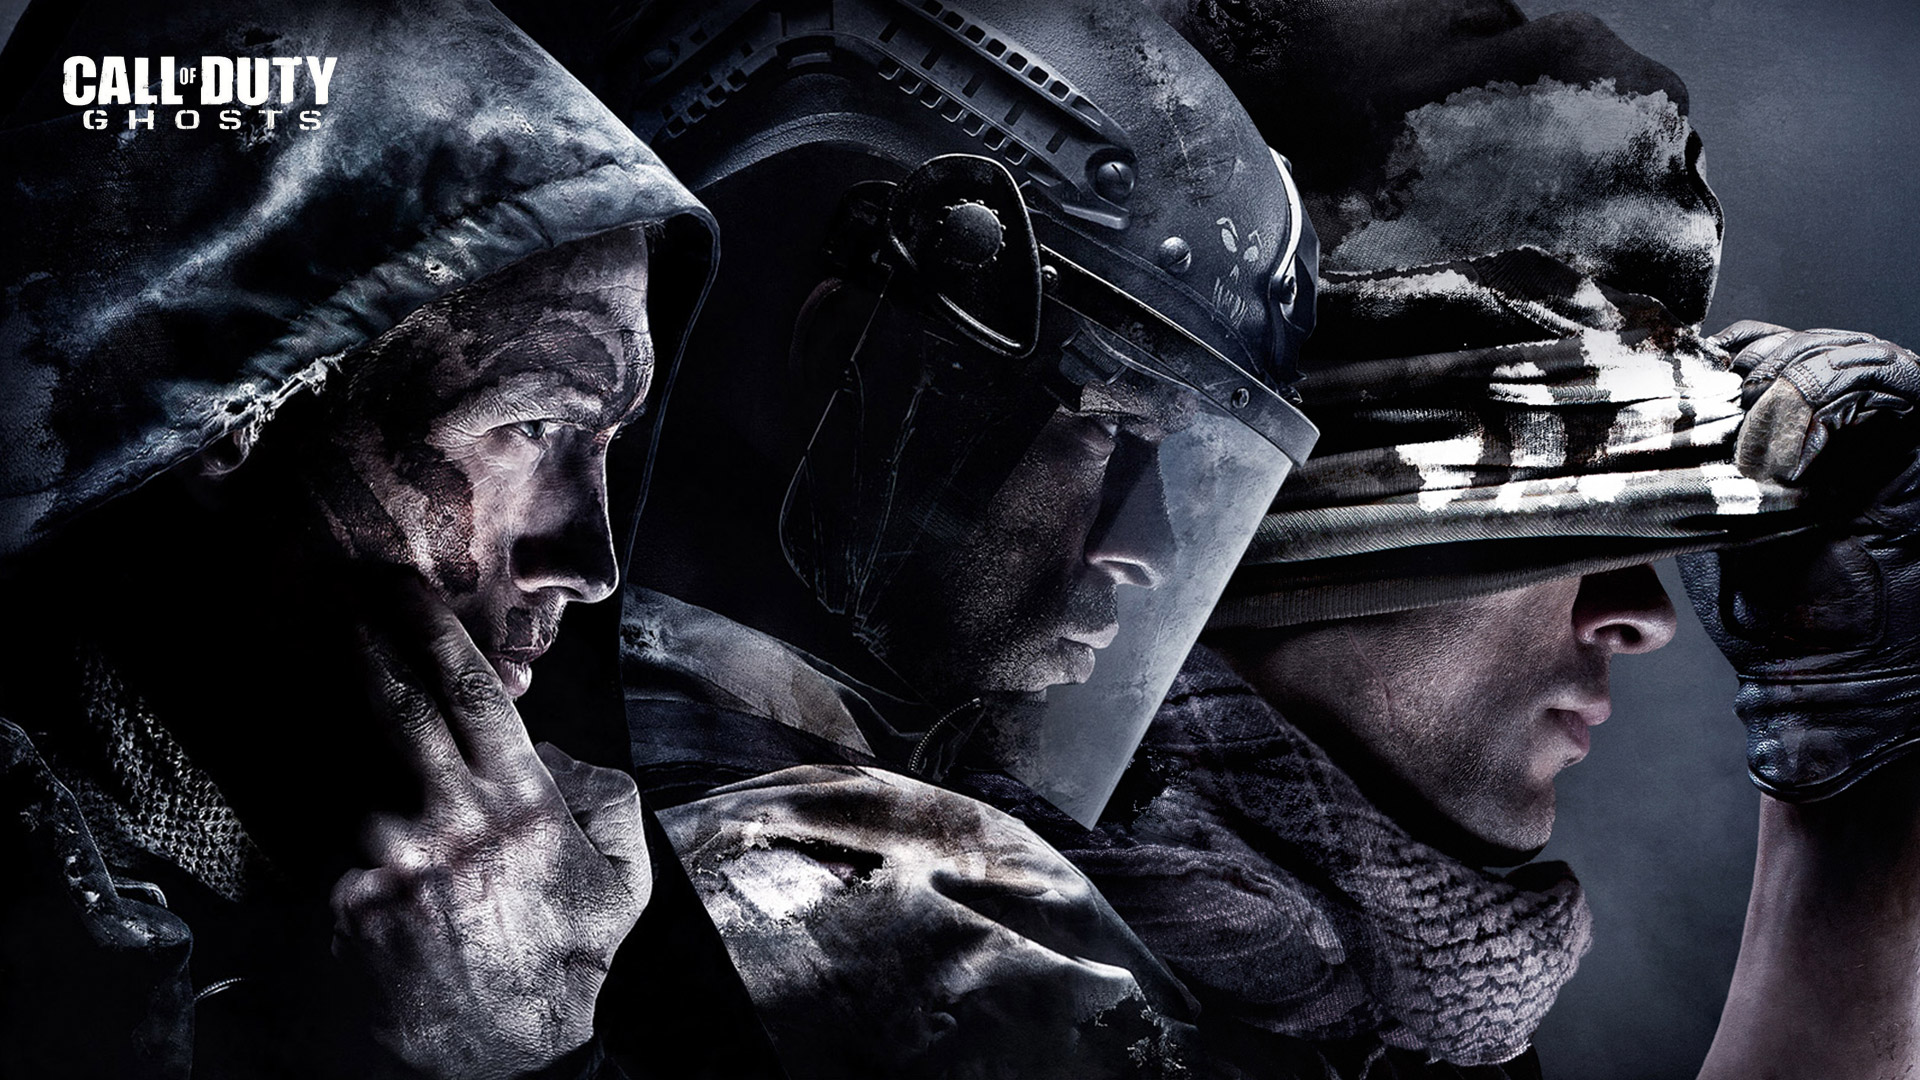 Hd Wallpapers For Pc Call Of Duty